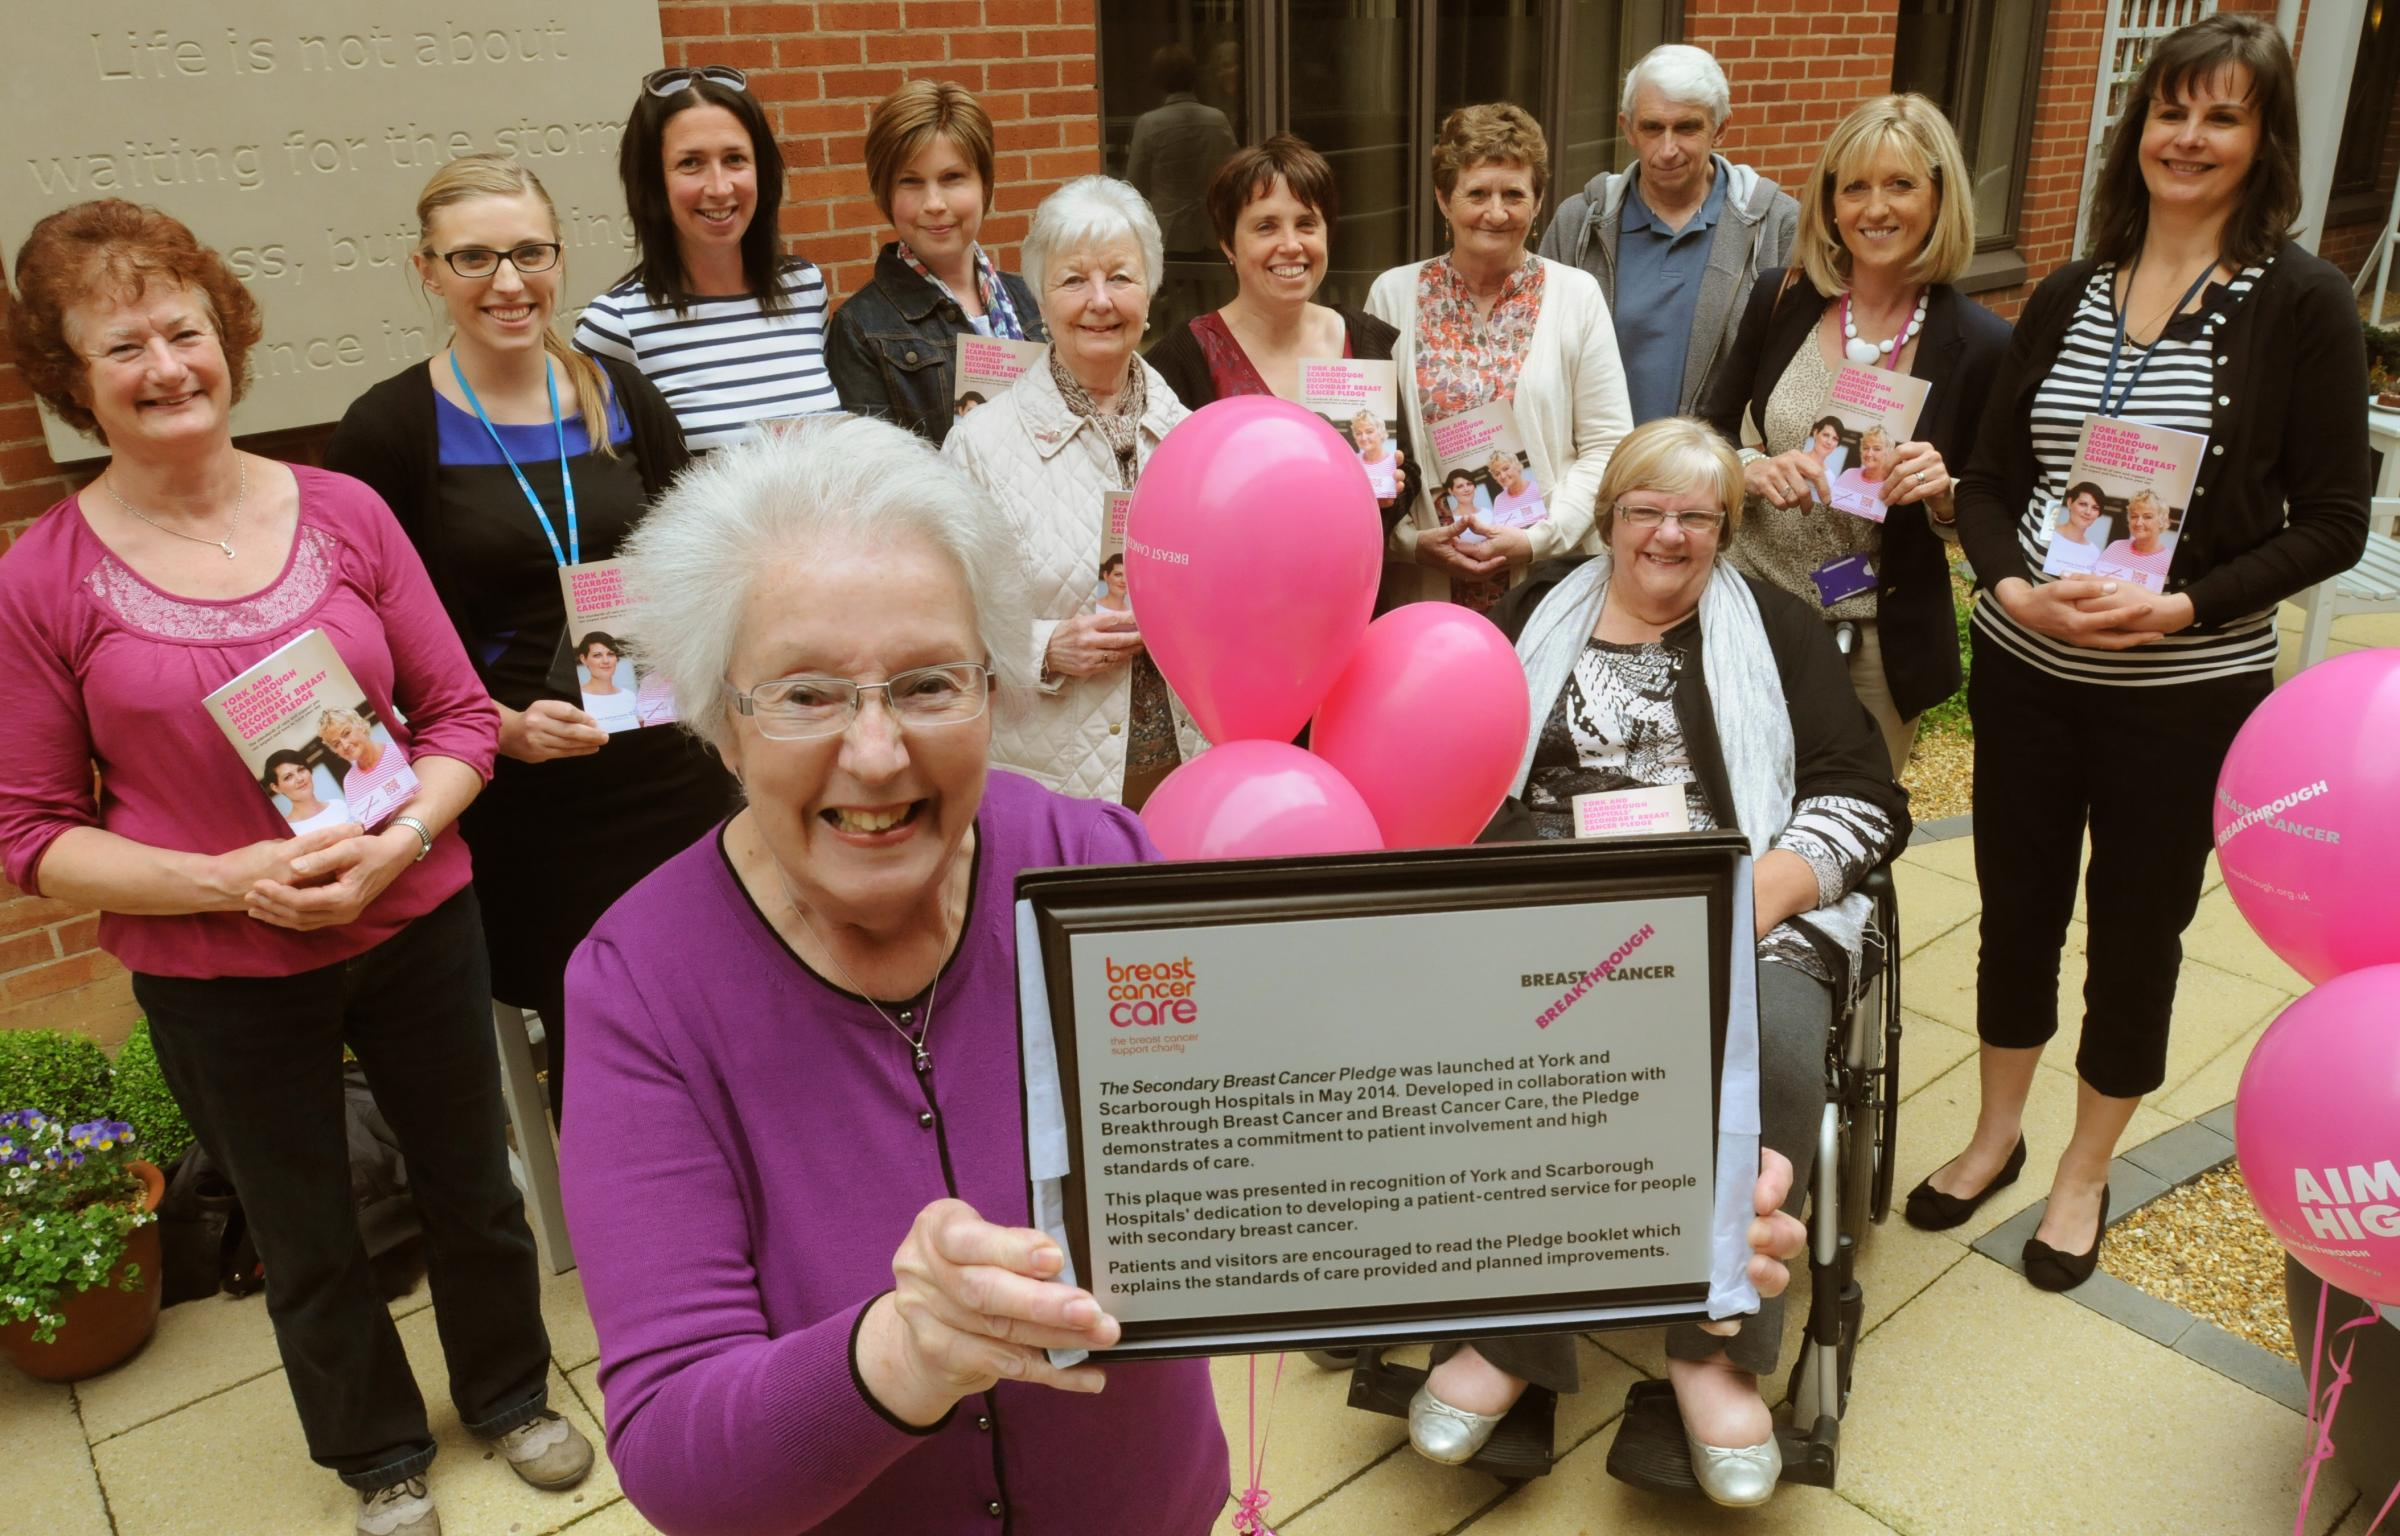 Patients and staff at the York Hospital Cancer Care Centre mark two of the UK's leading breast cancer charities-Breakthrough Breast Cancer and Breast Cancer Care teaming up with York and Scarborough Hospitals to improve services